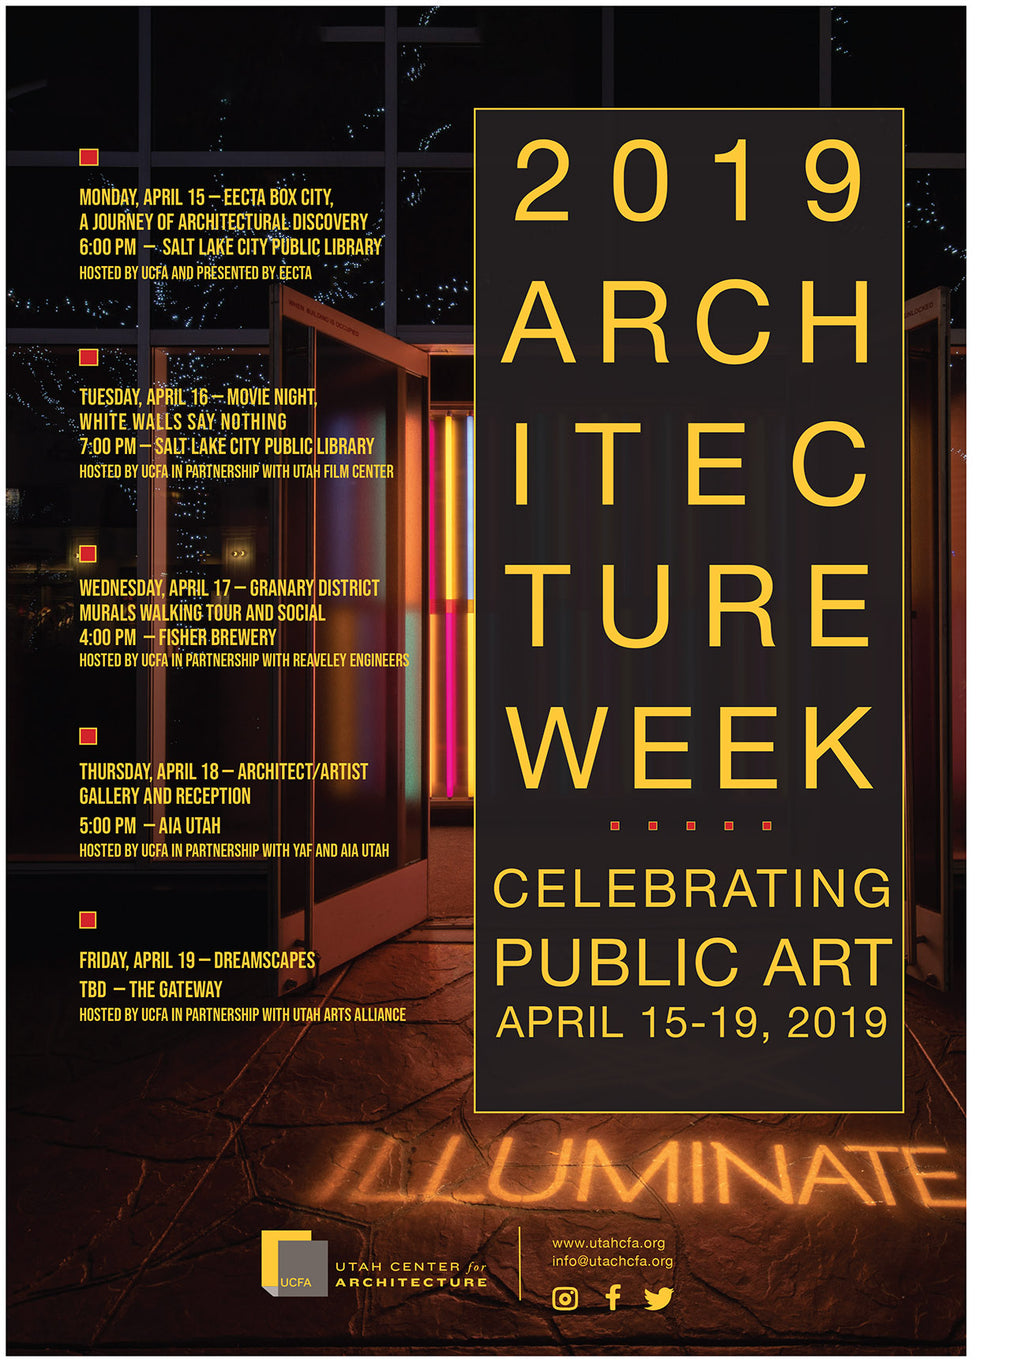 Utah Center for Architecture - Architecture Week